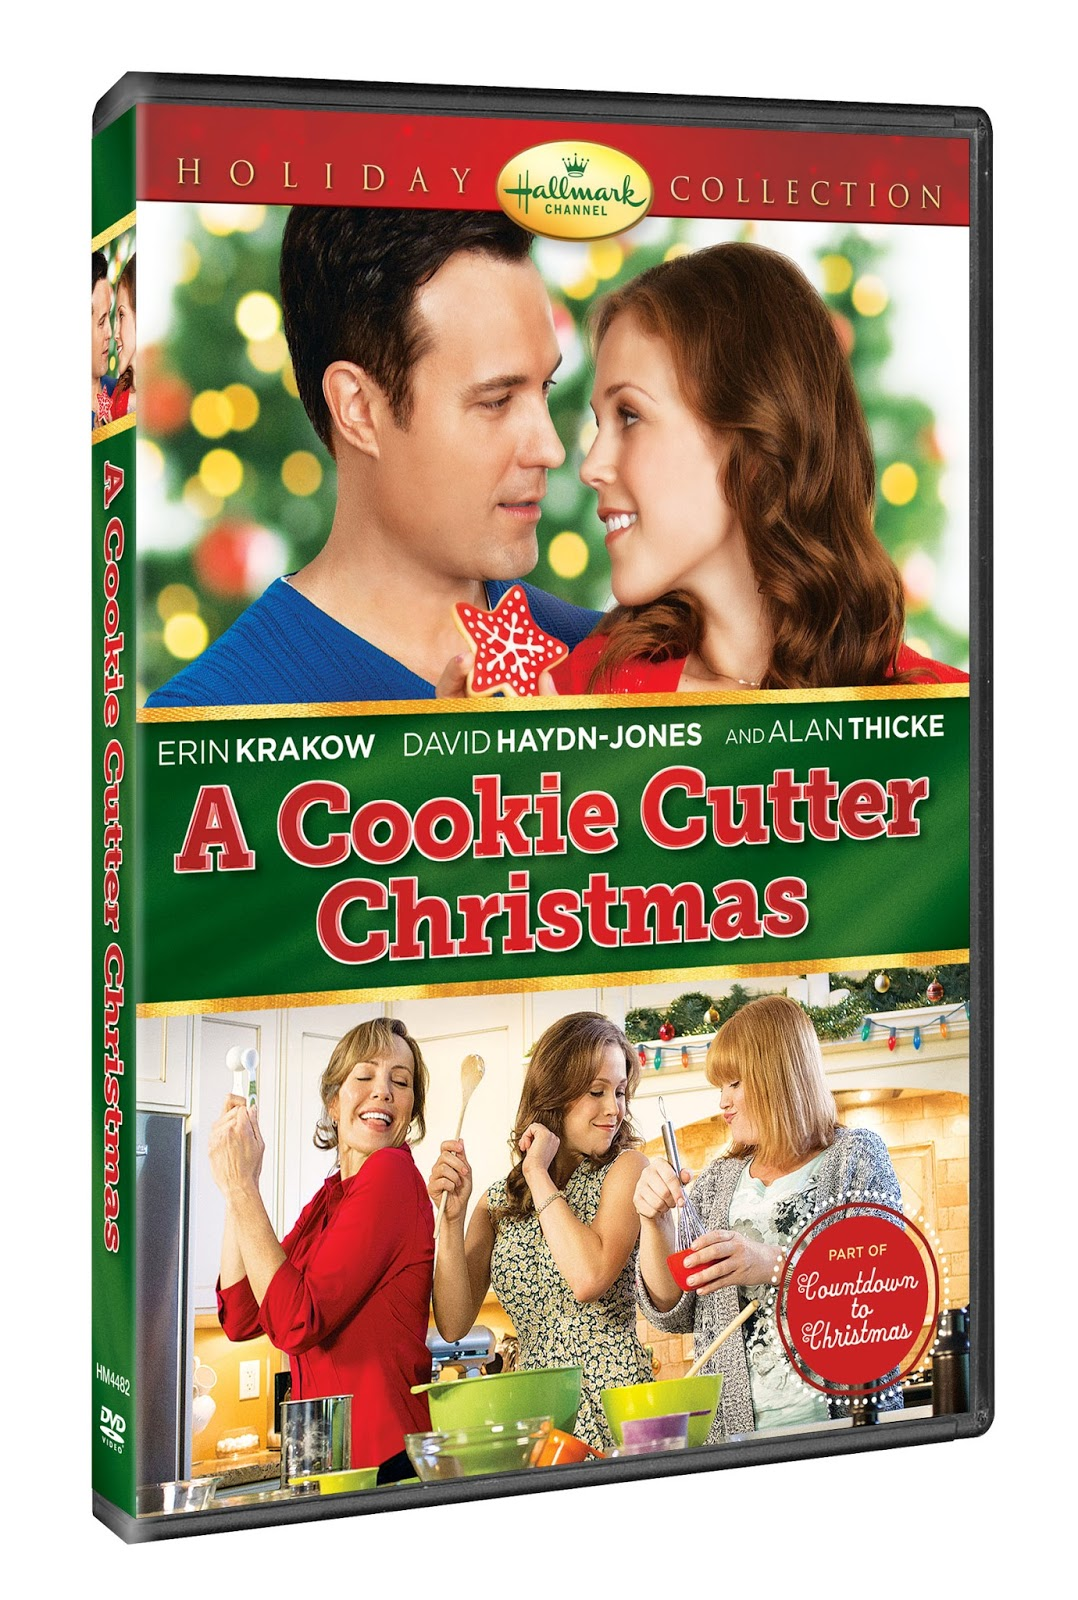 Dad of Divas\' Reviews: DVD Review - A Cookie Cutter Christmas